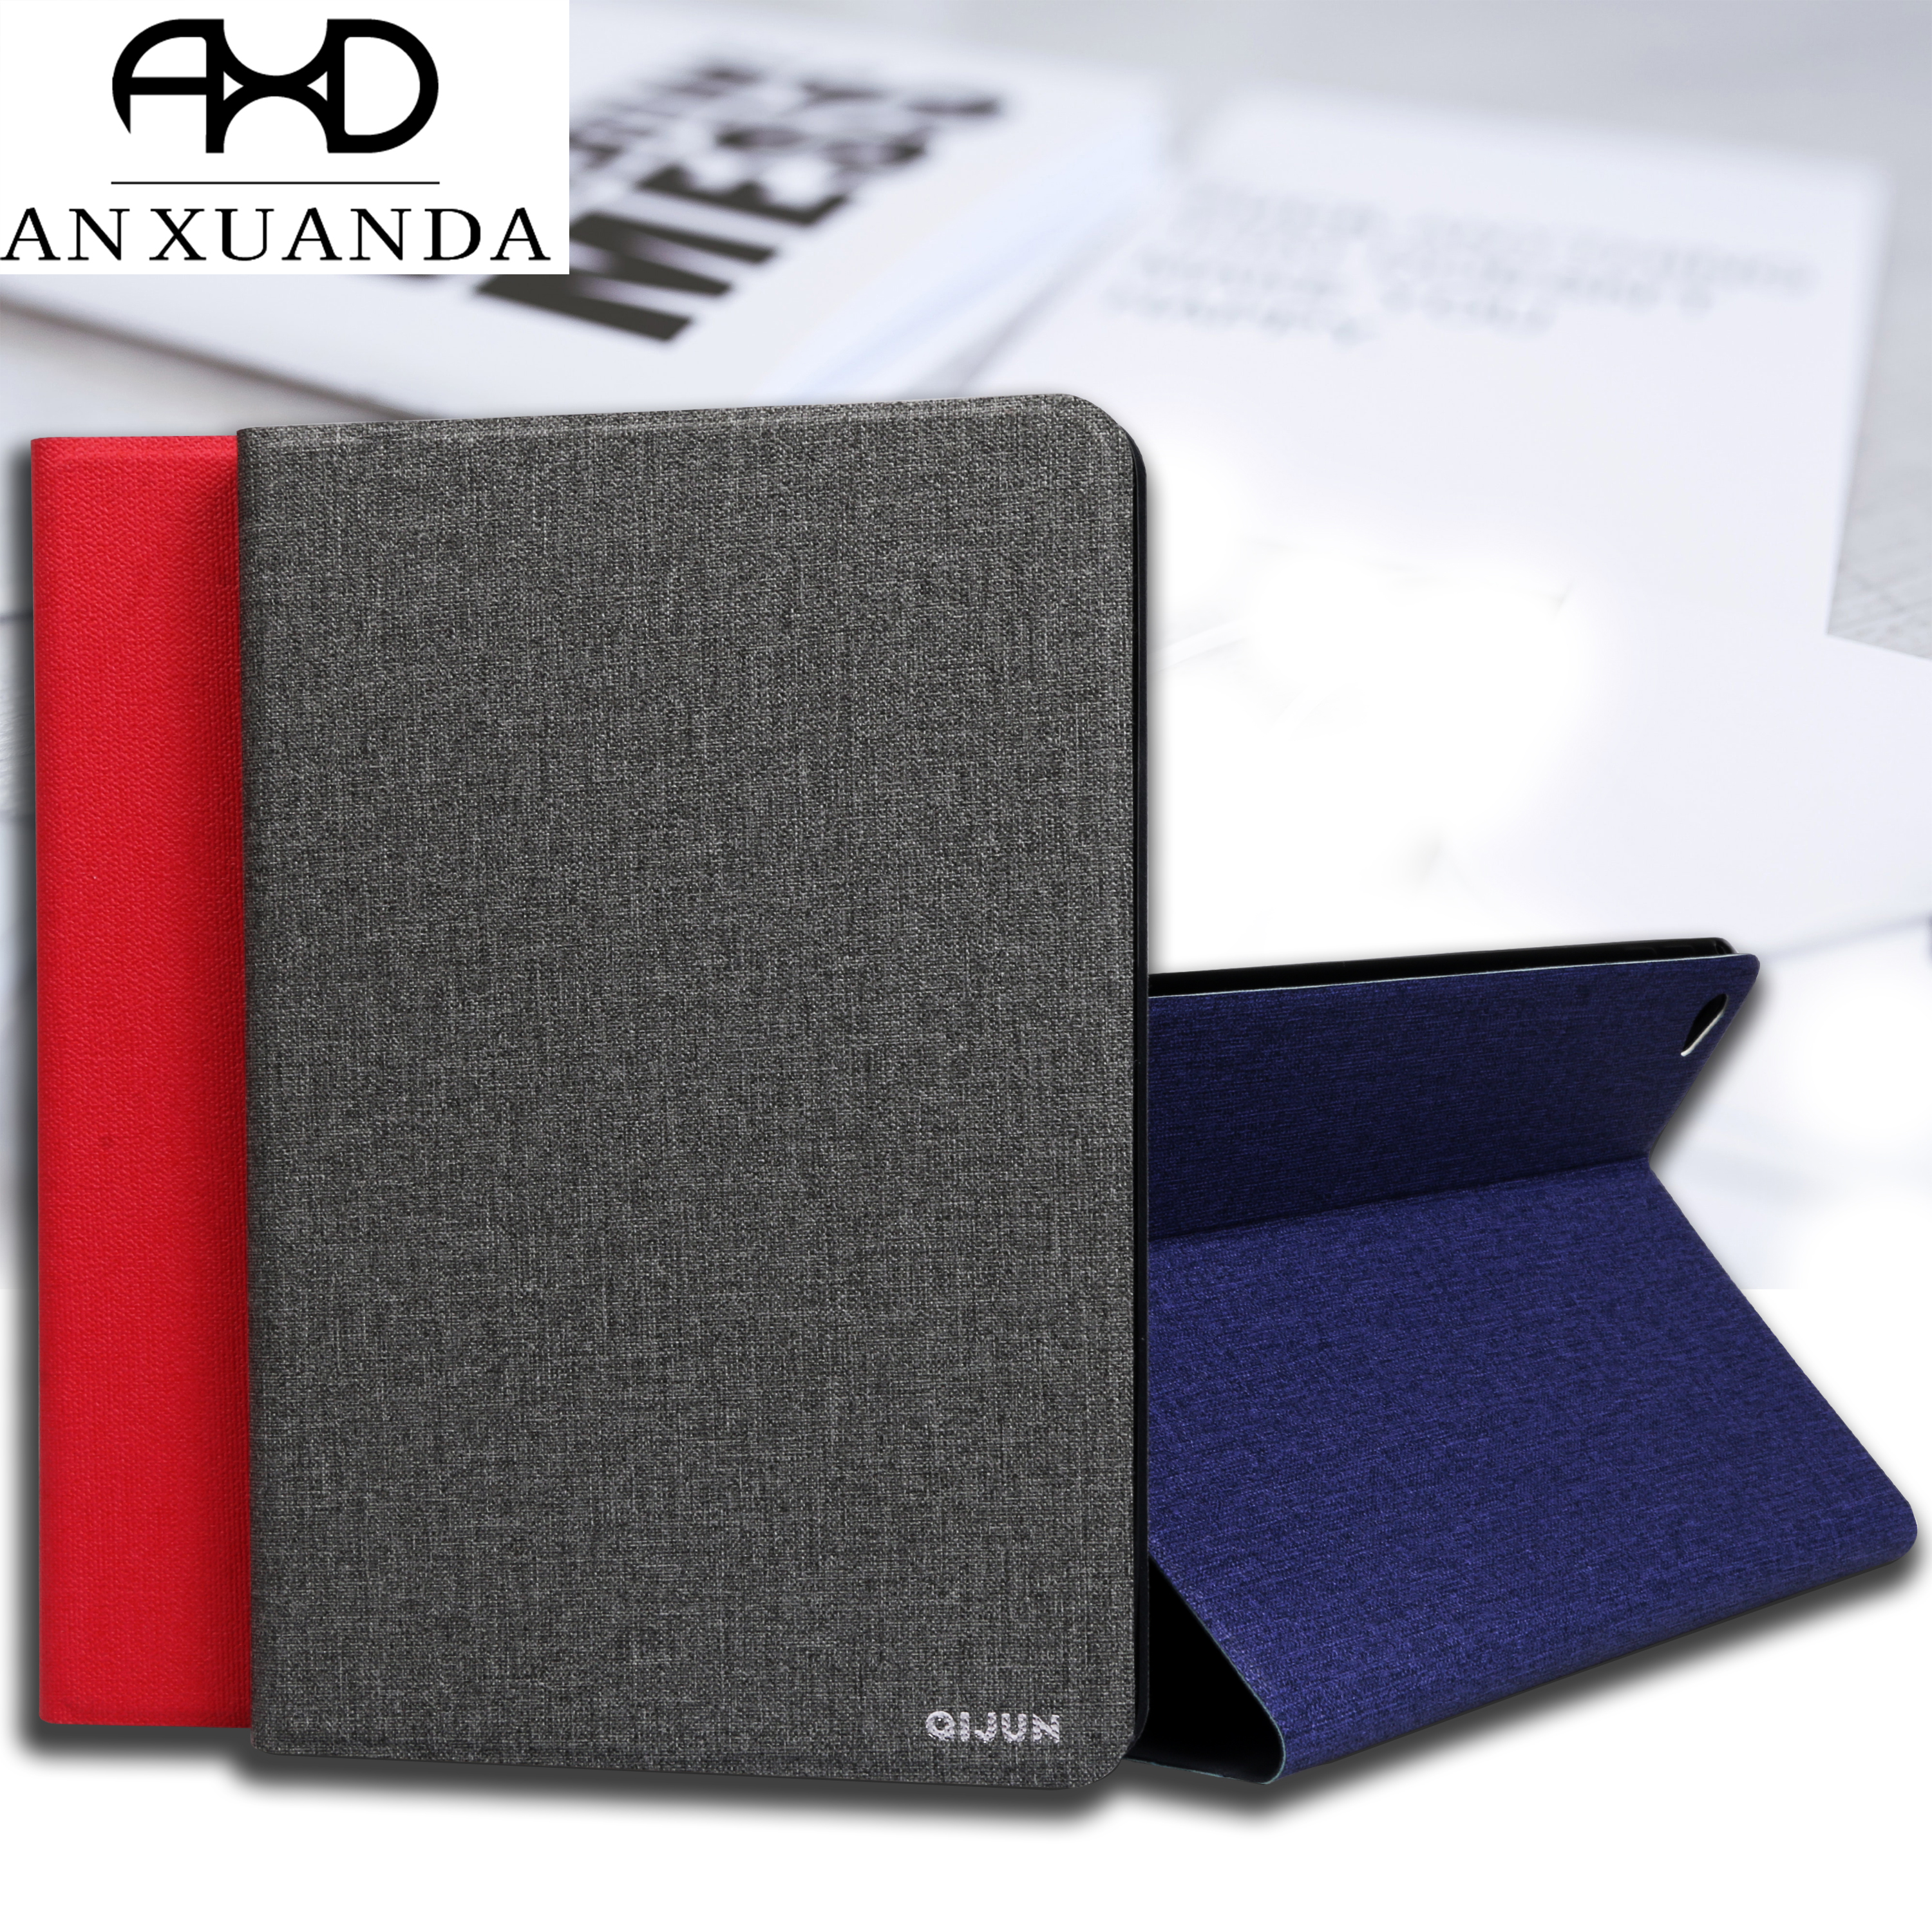 For Samsung Galaxy Tab 3 10.1 inch P5200 QIJUN <font><b>Case</b></font> for galaxy GT P5200 <font><b>P5210</b></font> P5220 <font><b>Case</b></font> Slim Flip Cover Soft Protective Shell image